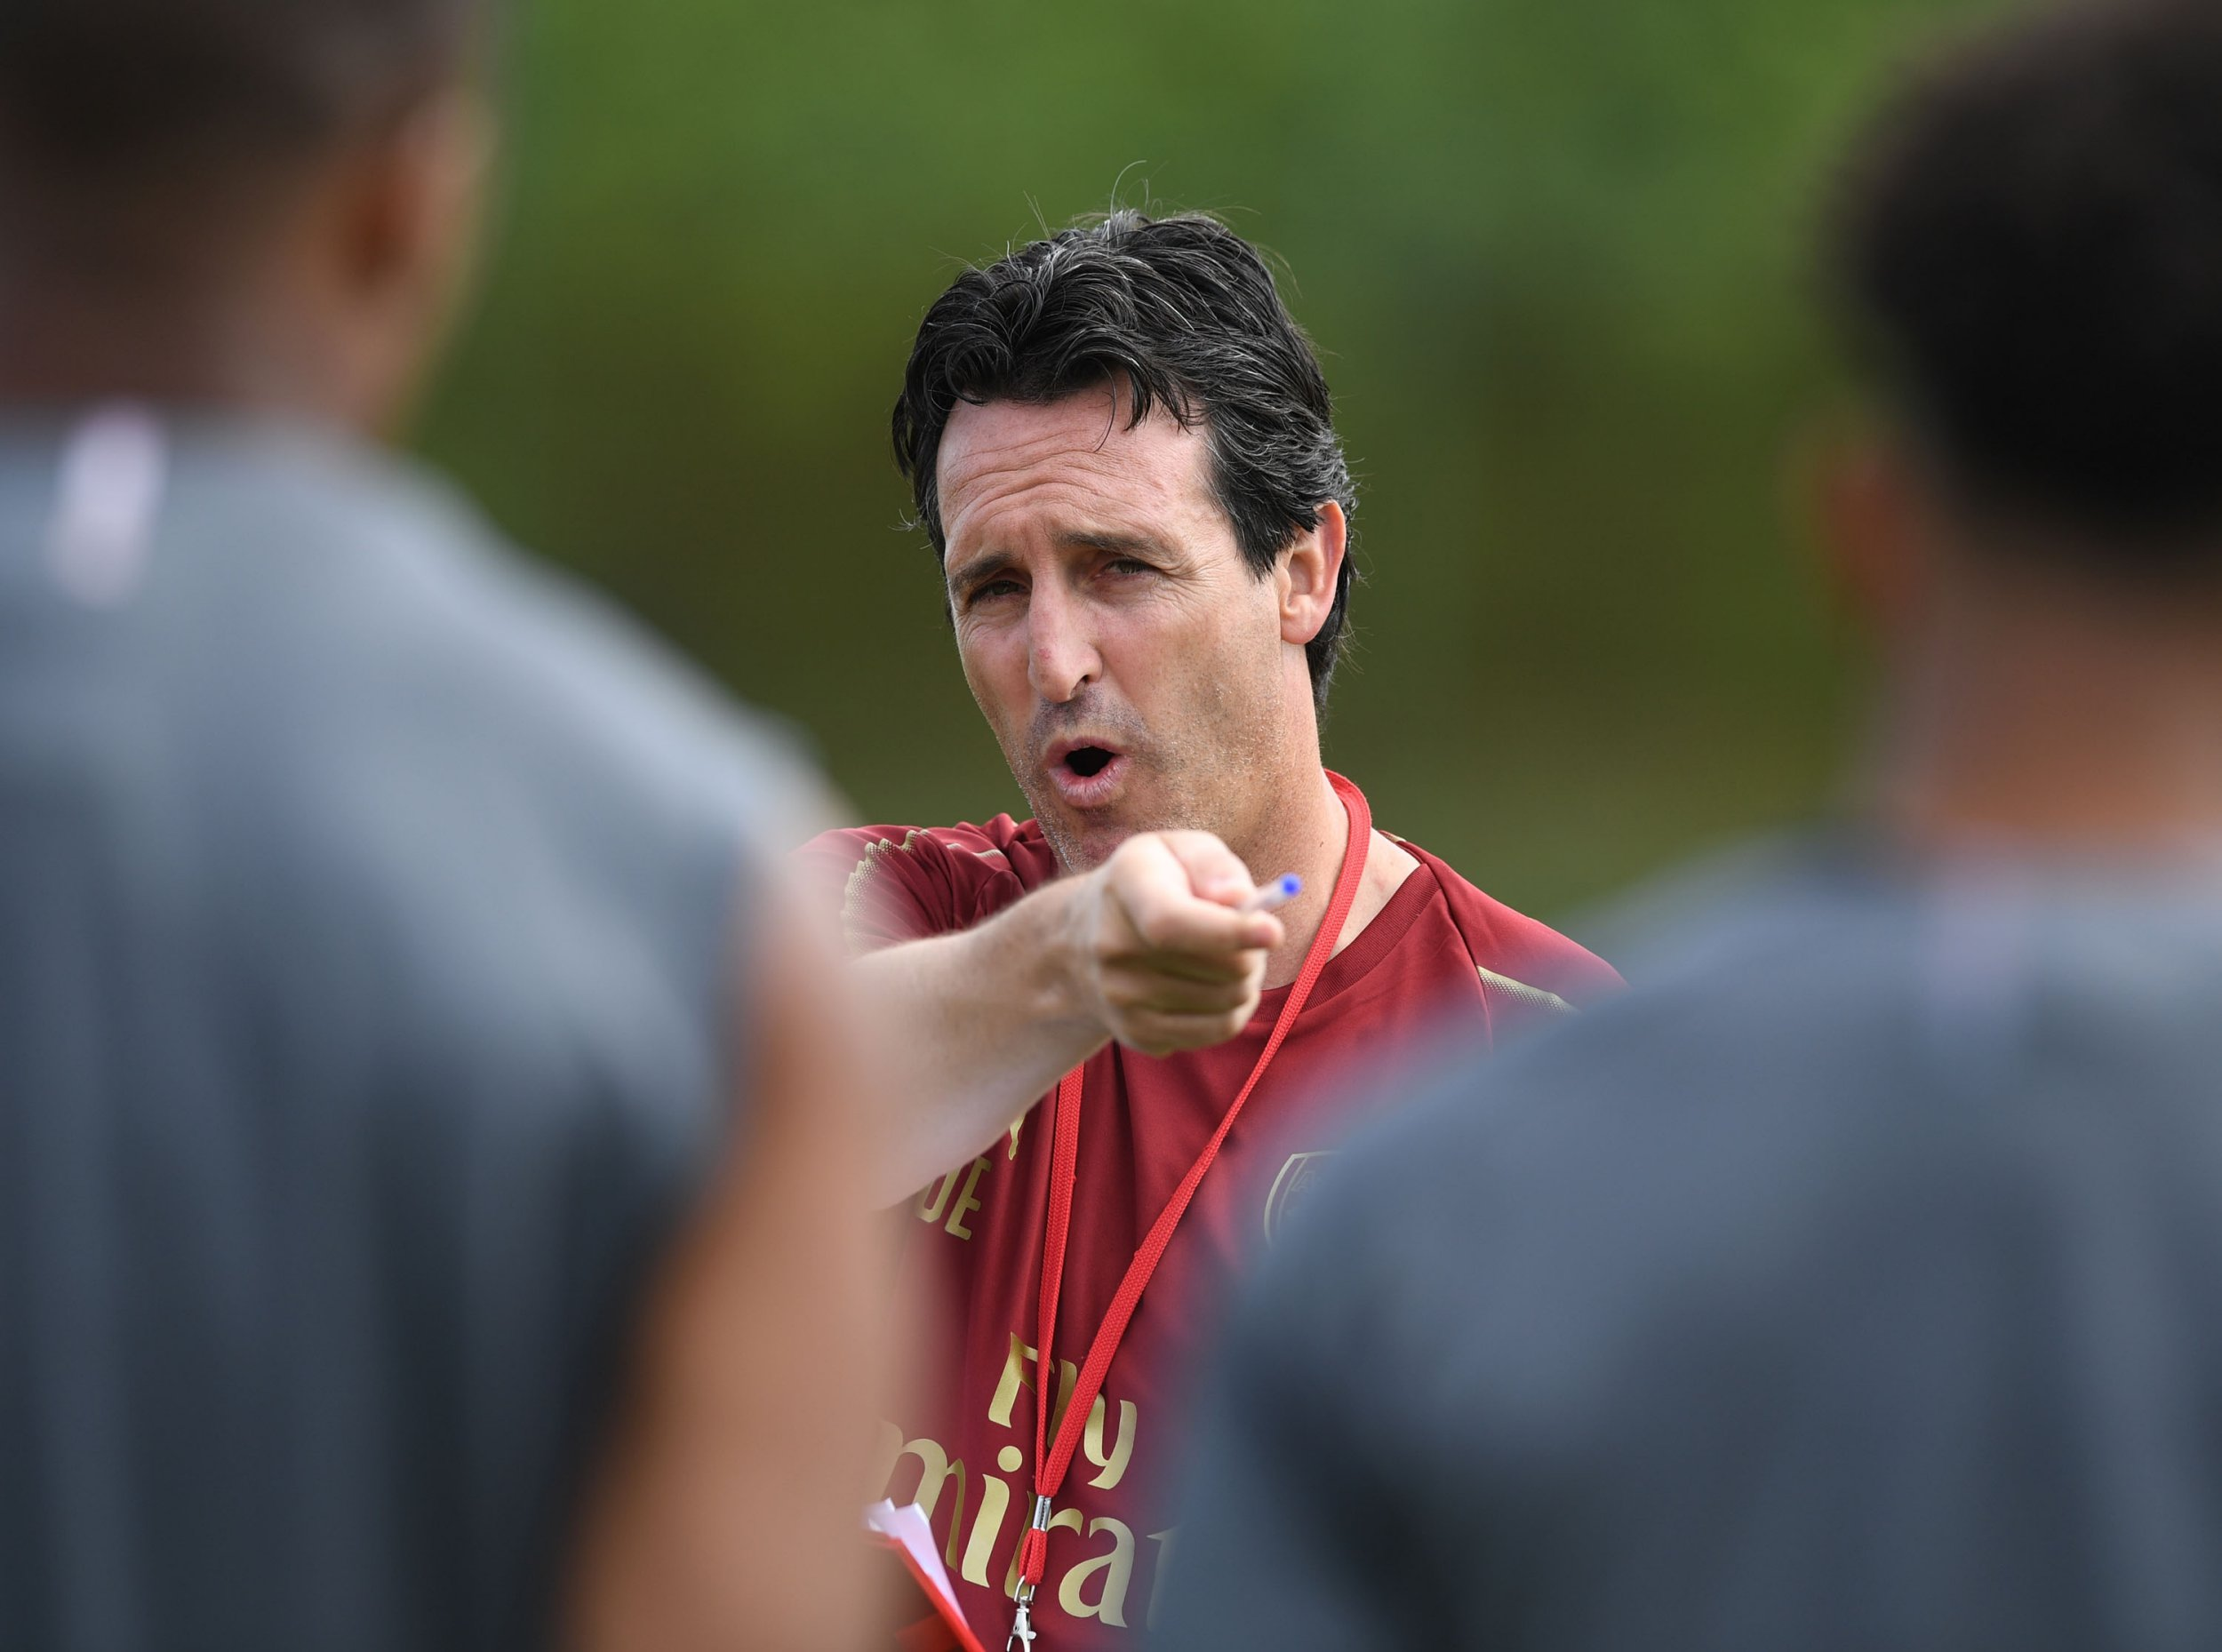 ST ALBANS, ENGLAND - JULY 04: Arsenal Head Coach Unai Emery during a training session at London Colney on July 4, 2018 in St Albans, England. (Photo by Stuart MacFarlane/Arsenal FC via Getty Images)